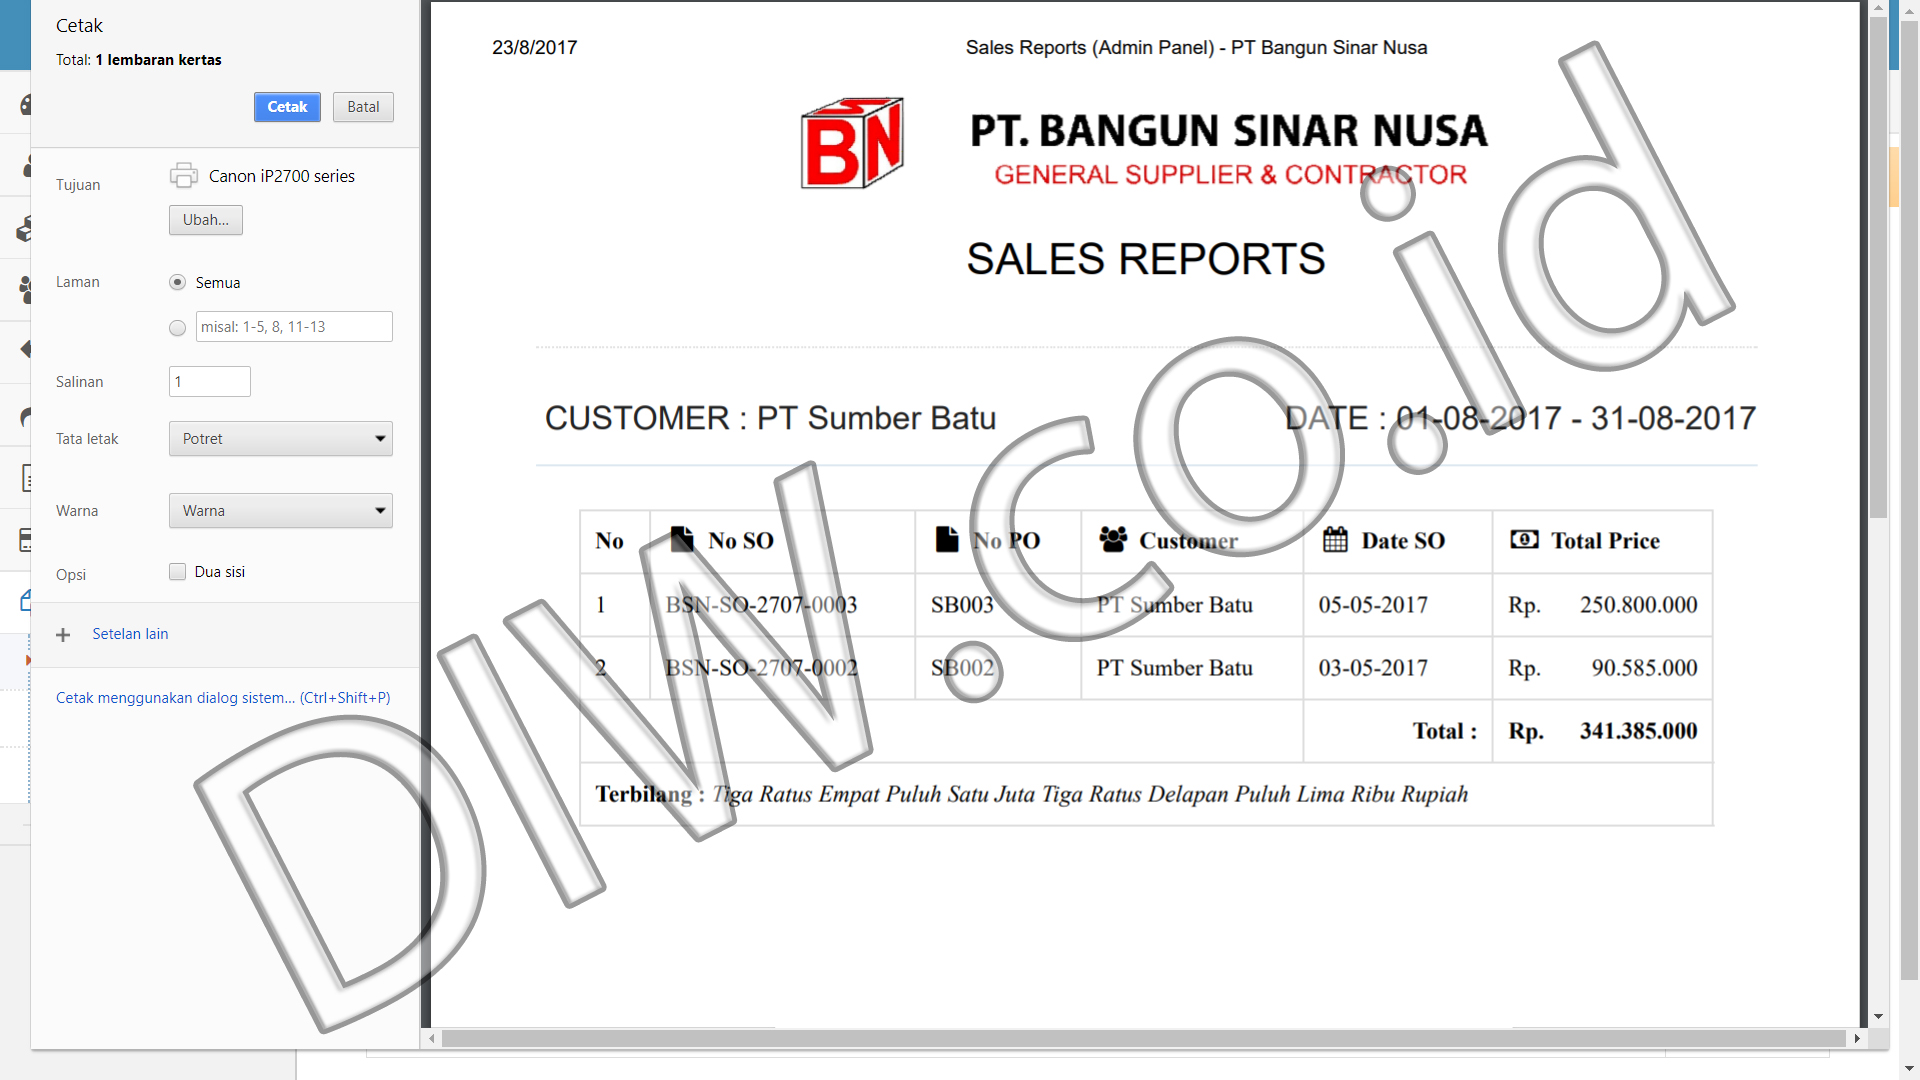 Portfolio 5 - PT Bangun Sinar Nusa - Andri Sunardi - Freelancer - Web Developer - CEO DIW.co.id